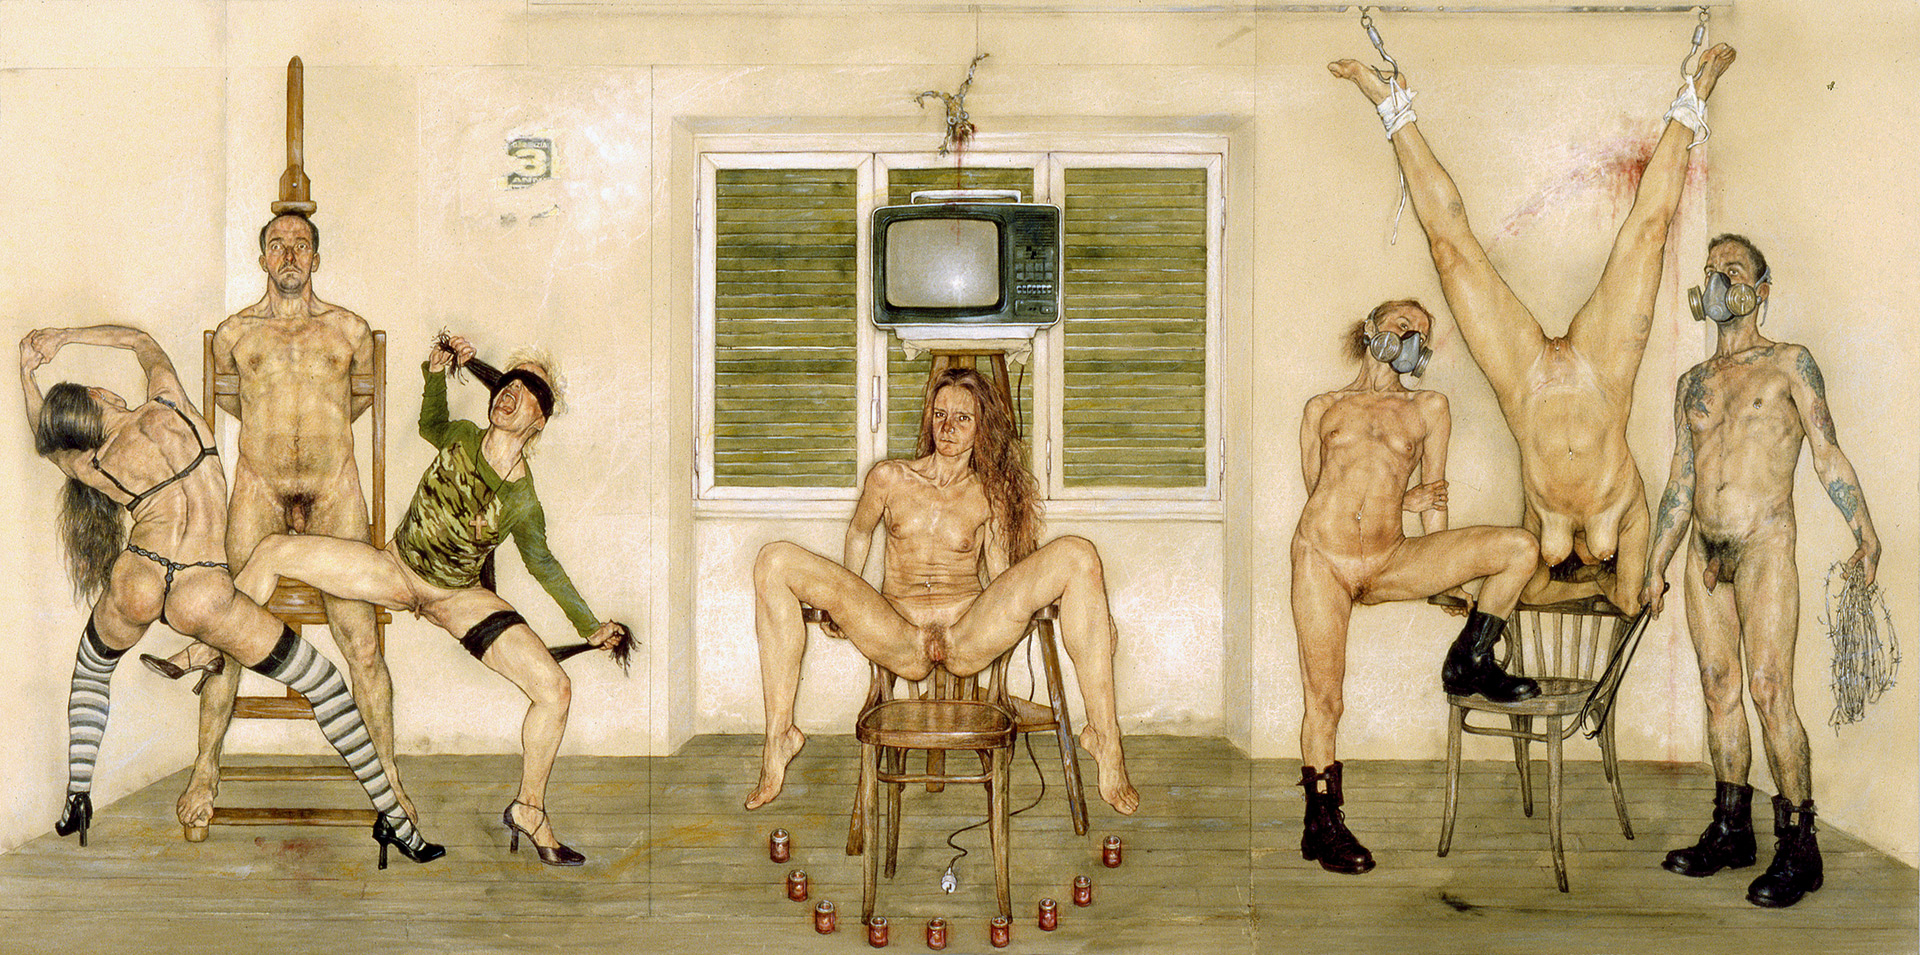 <span>Liturgia dell'audience</span> - Tecnica mista su carta applicata su tavola, 128x63cm, 2003/2004